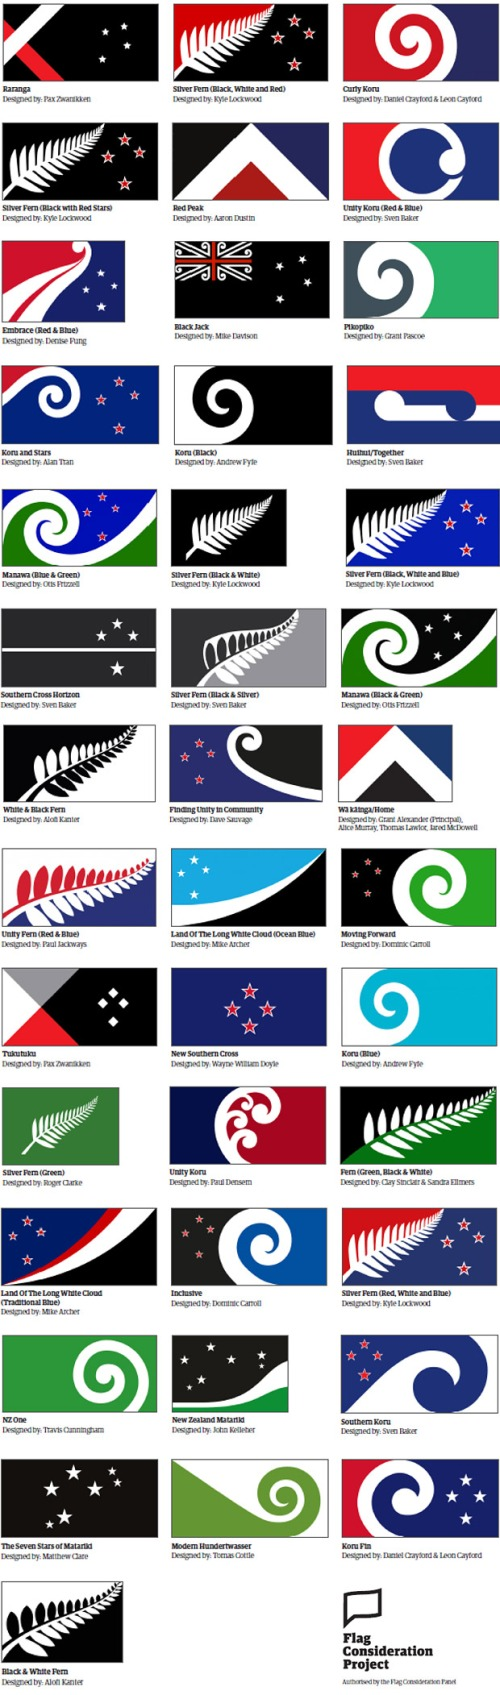 NZflagsAug2015 [via NZH - supplied]